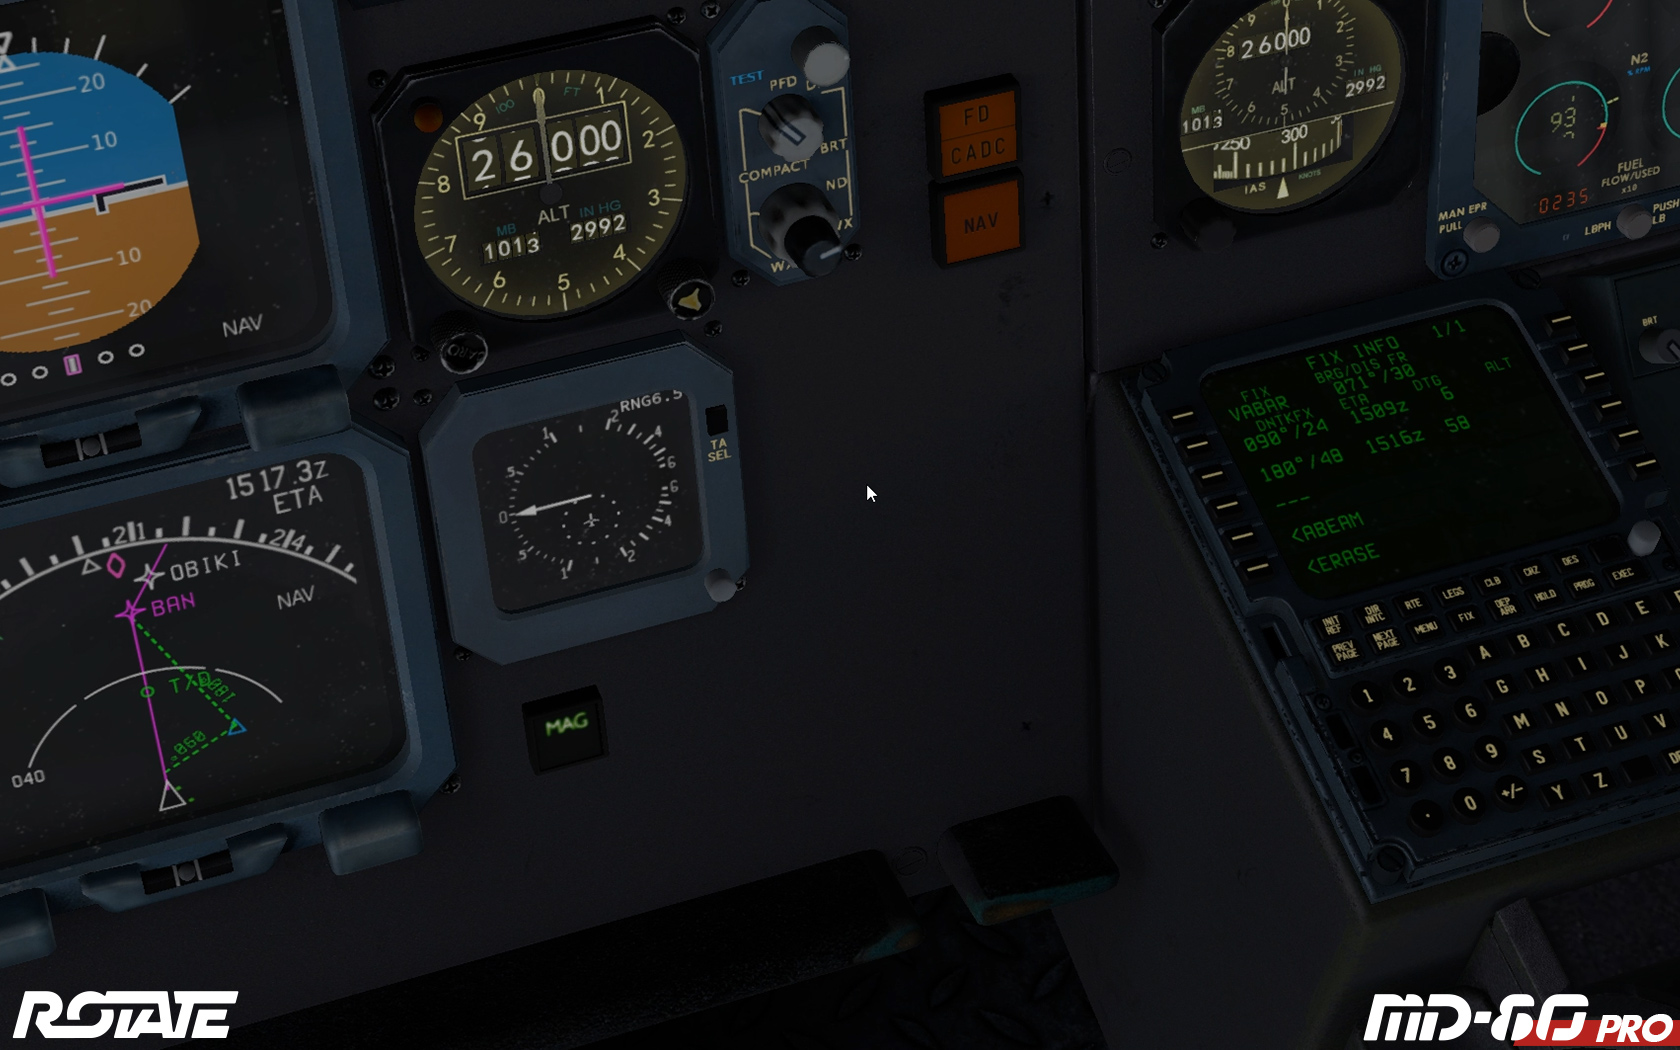 Rotate MD-80v1.40 Pro. Screenshot 02.